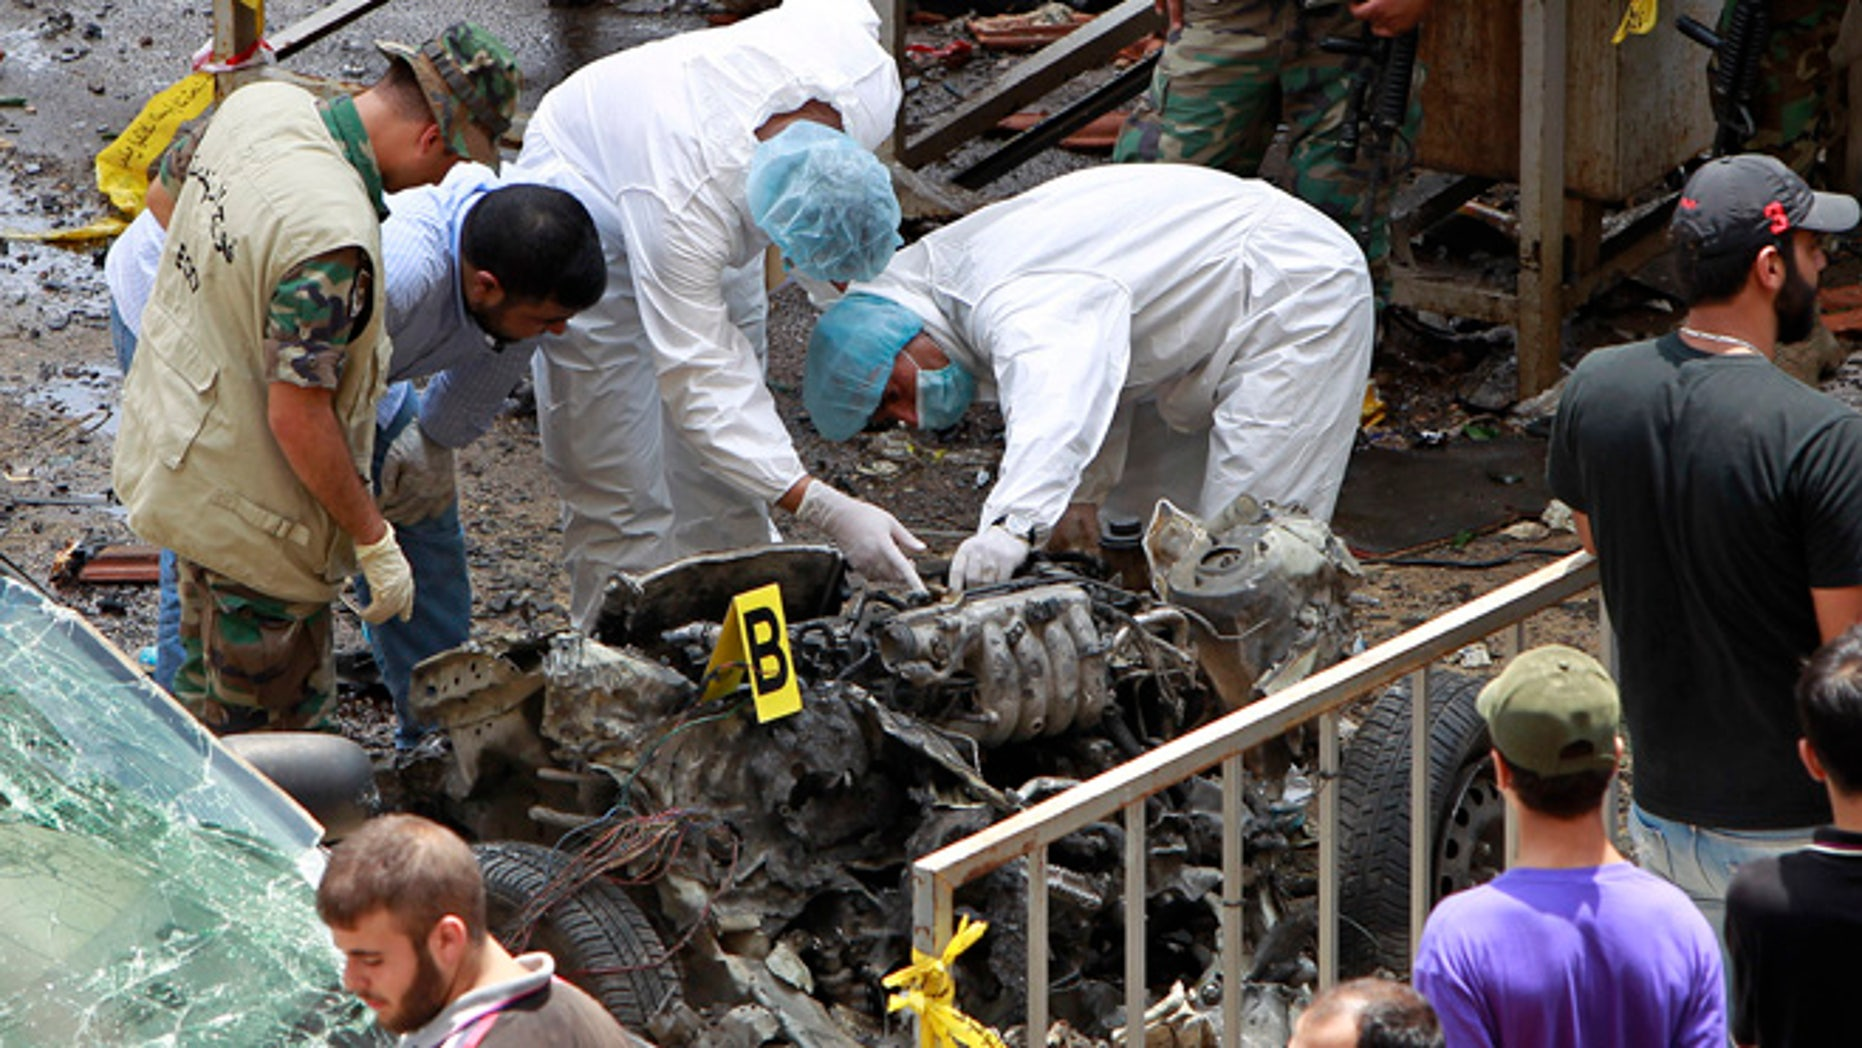 July 9, 2013: Forensic experts inspect the remnants of a car bomb at the scene of a bombing in the Beir el-Abed, a southern suburb of Beirut, Lebanon. A large explosion rocked a stronghold of the Shiite militant Hezbollah group south of the Lebanese capital Tuesday, setting several cars on fire, sending a thick plume of black smoke billowing into the sky and wounding more than a dozen people, security officials said.